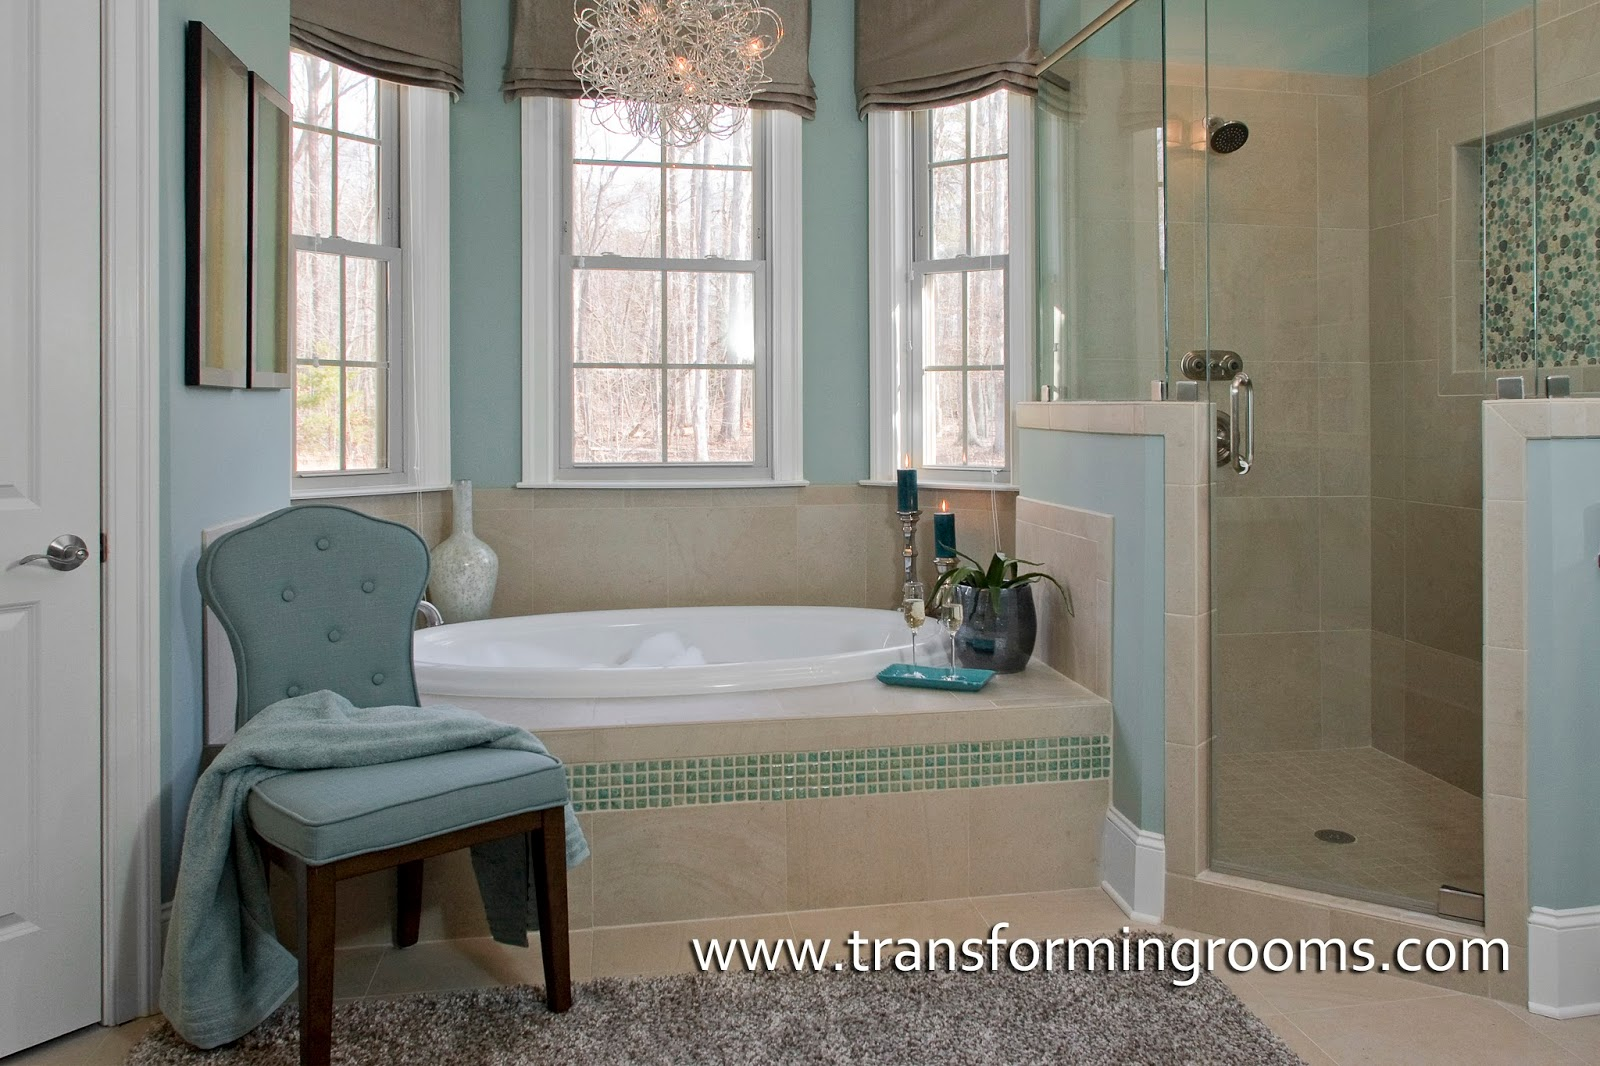 How to layout a master bathroom for a remodel, corner shower or tub ...